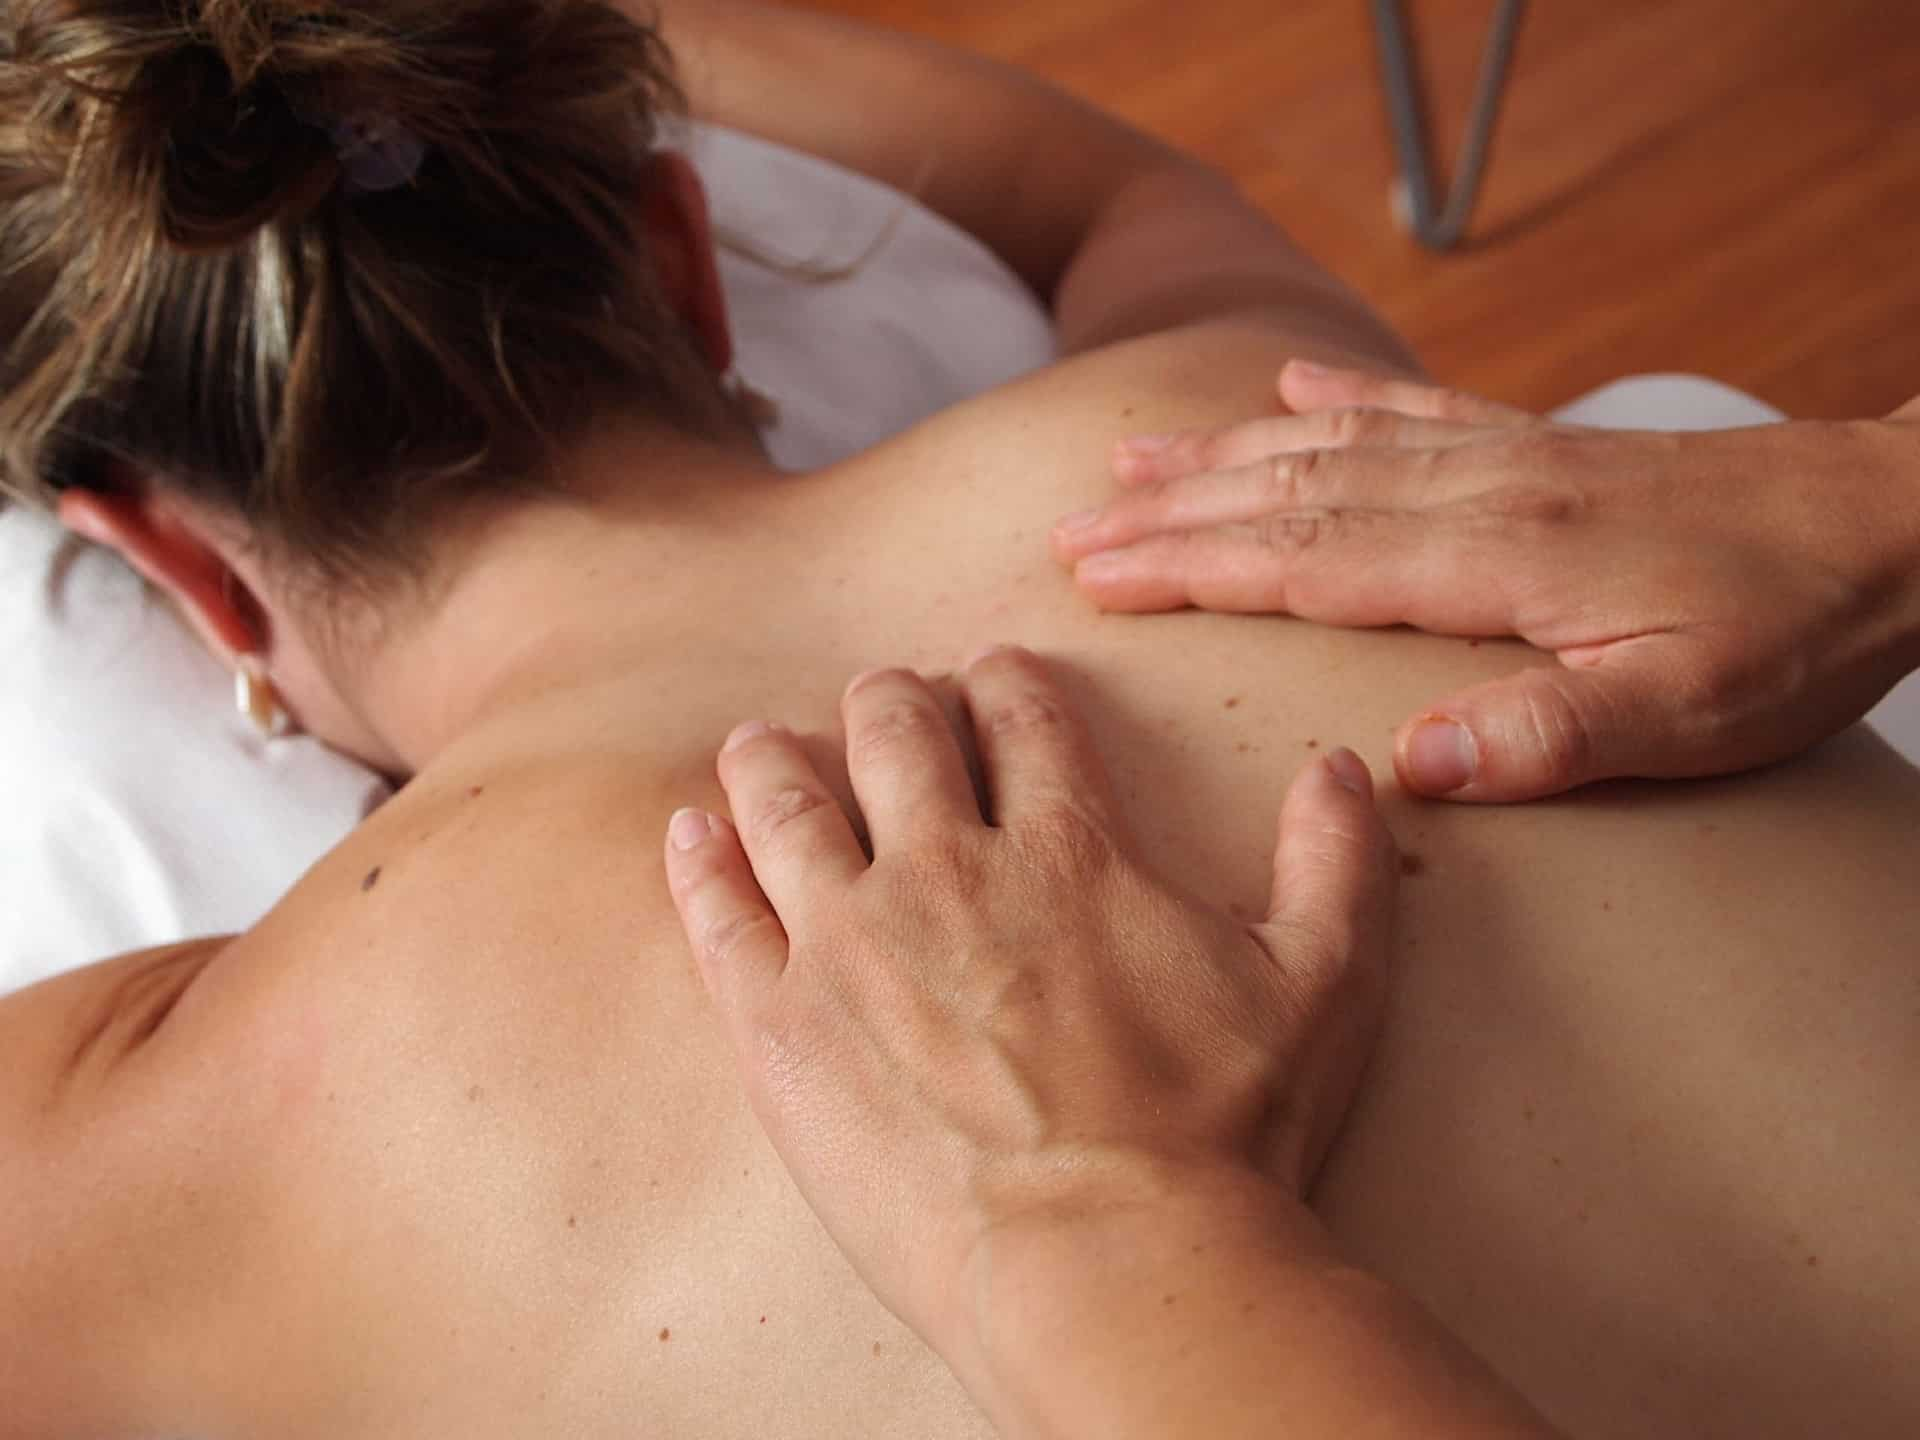 Physical Therapy Can Be Helpful for Neck Pain